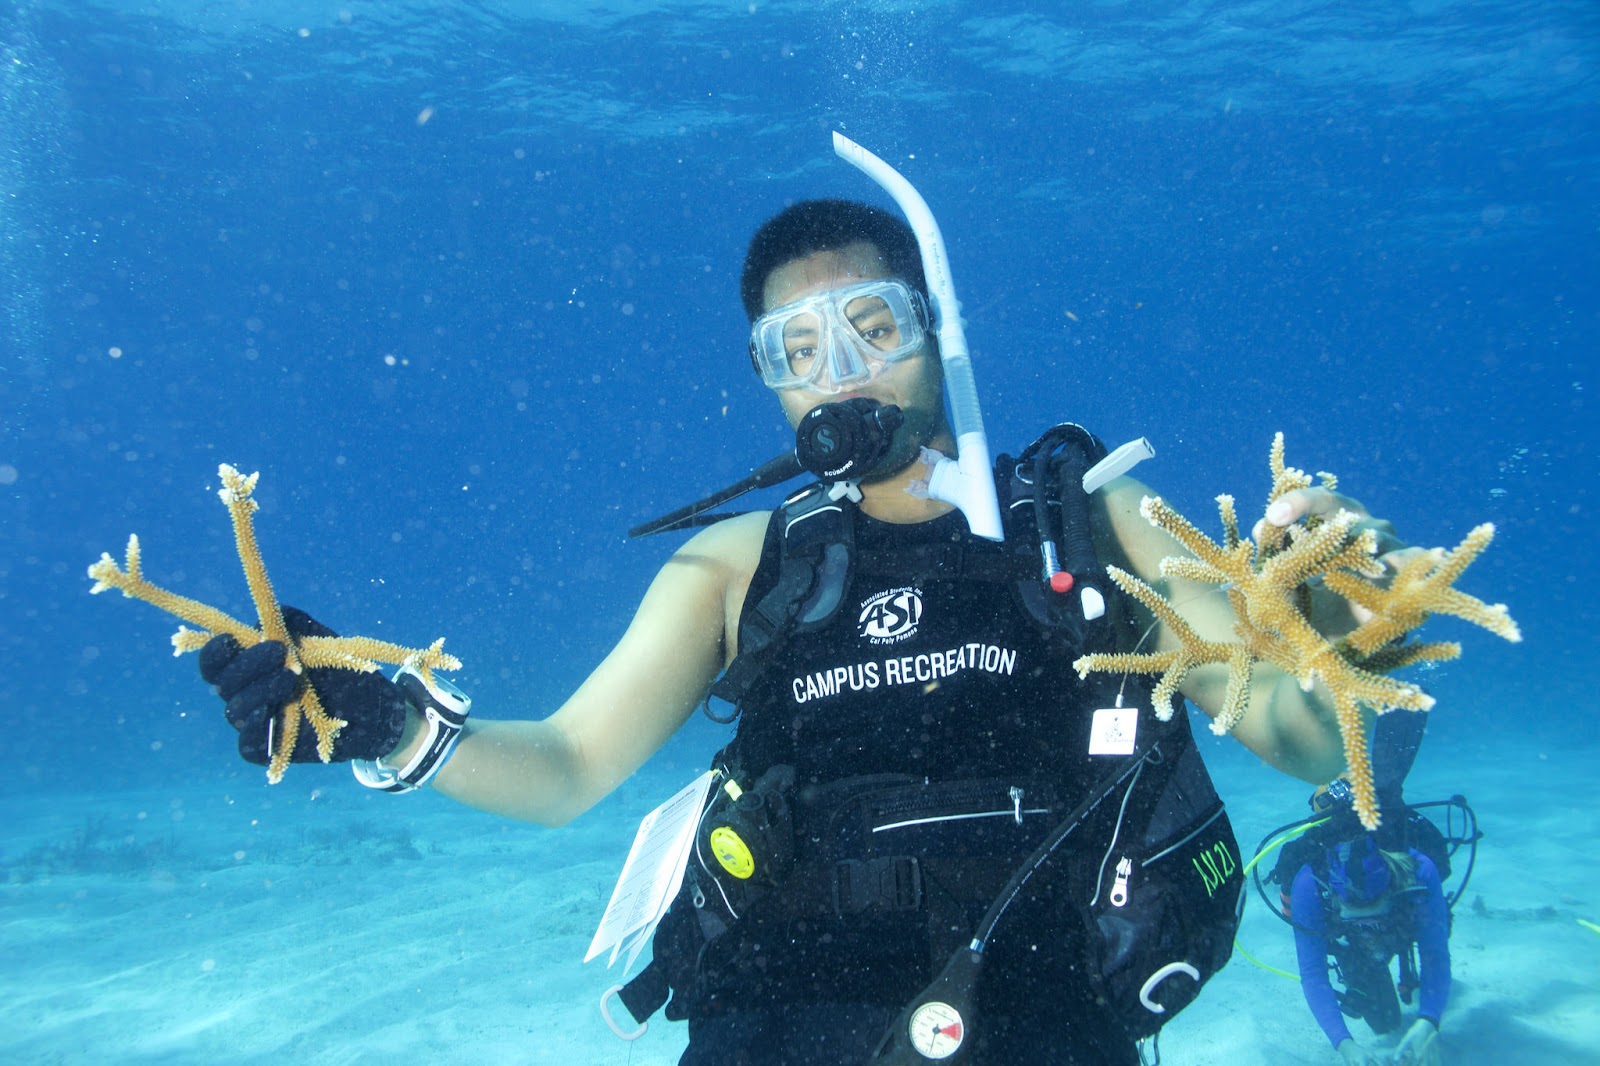 Student scuba diving in Key Largo, FL